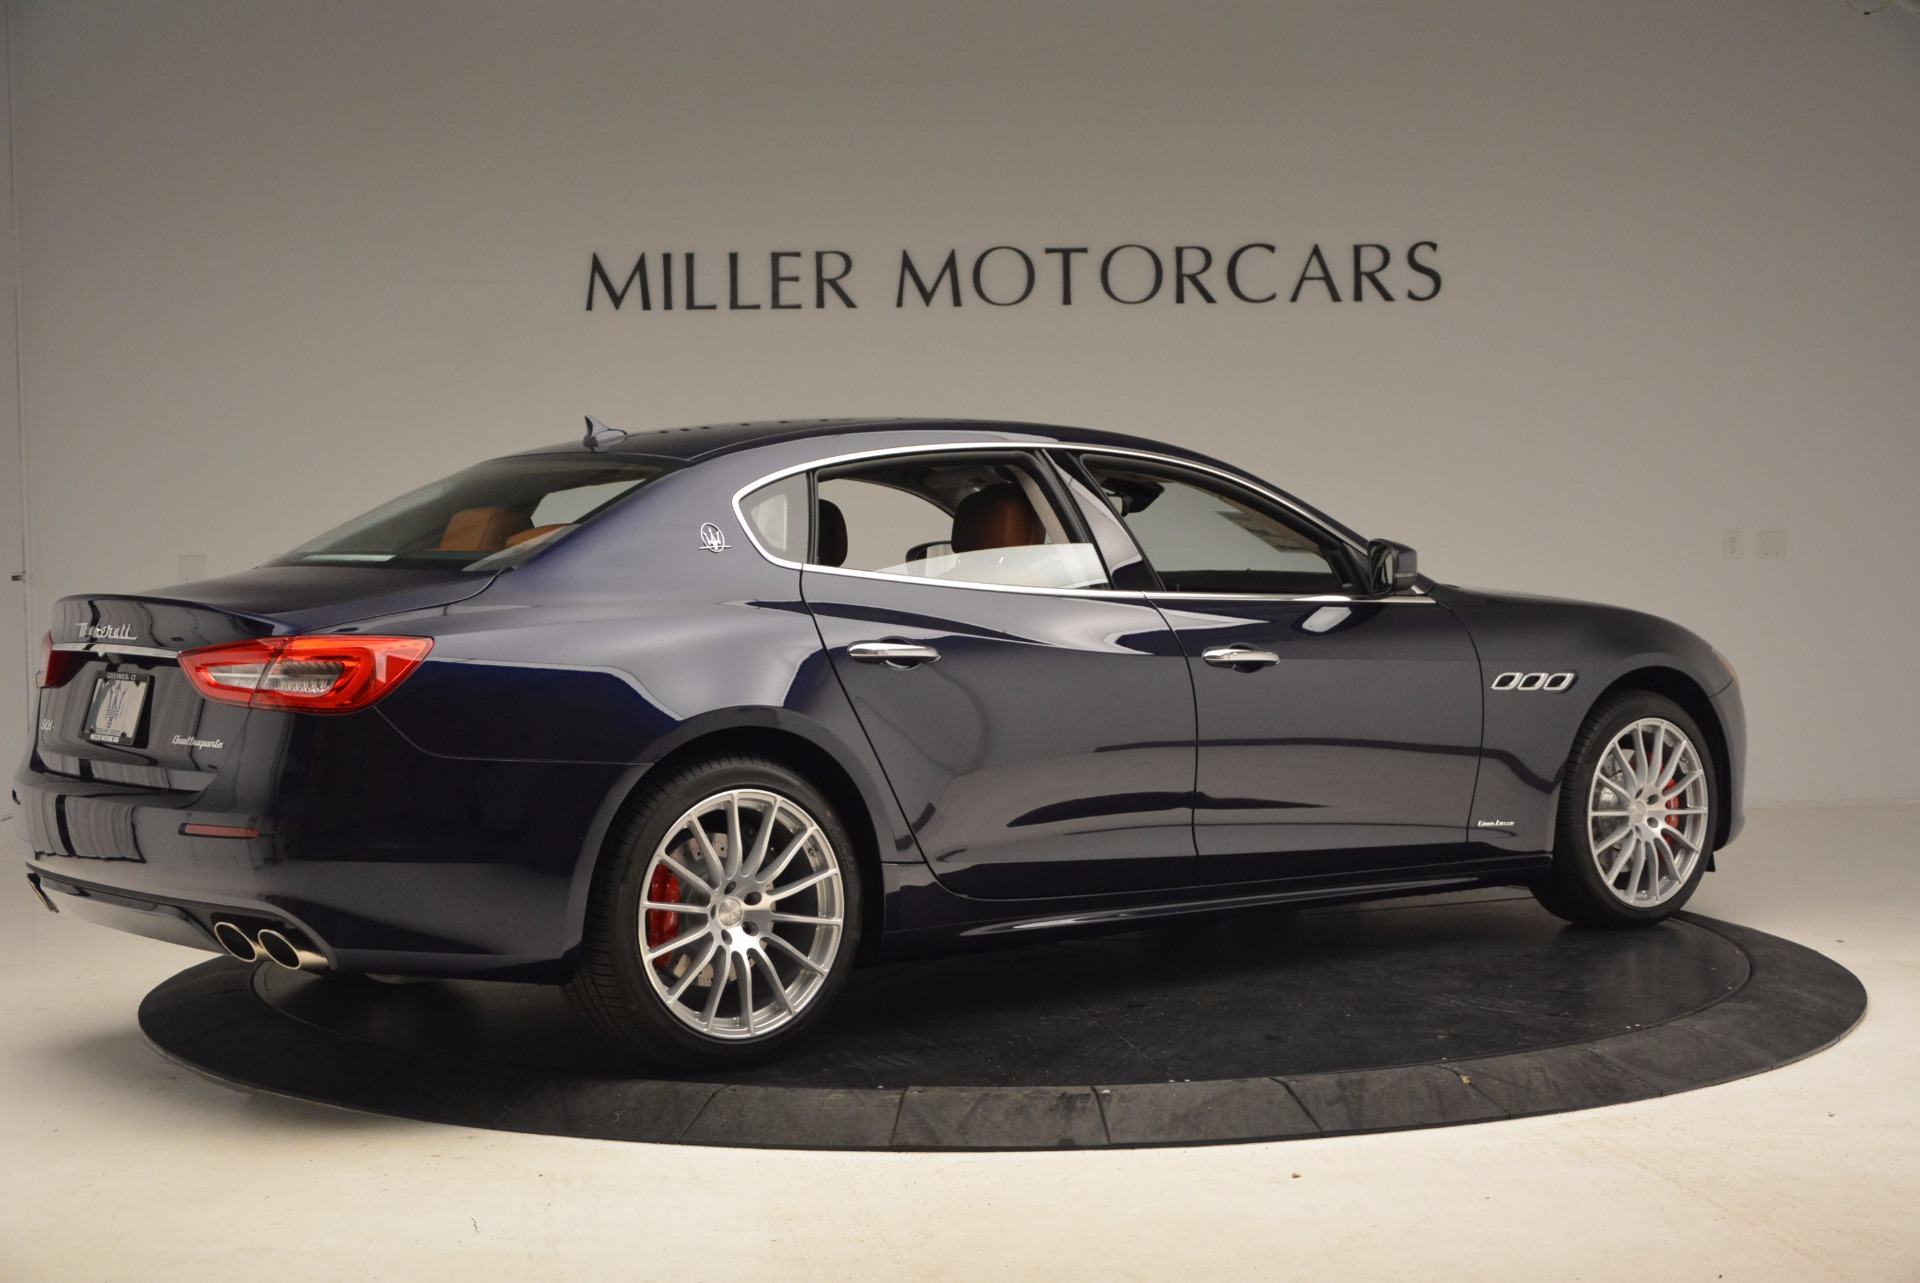 New 2018 Maserati Quattroporte S Q4 GranLusso For Sale In Greenwich, CT 1700_p8